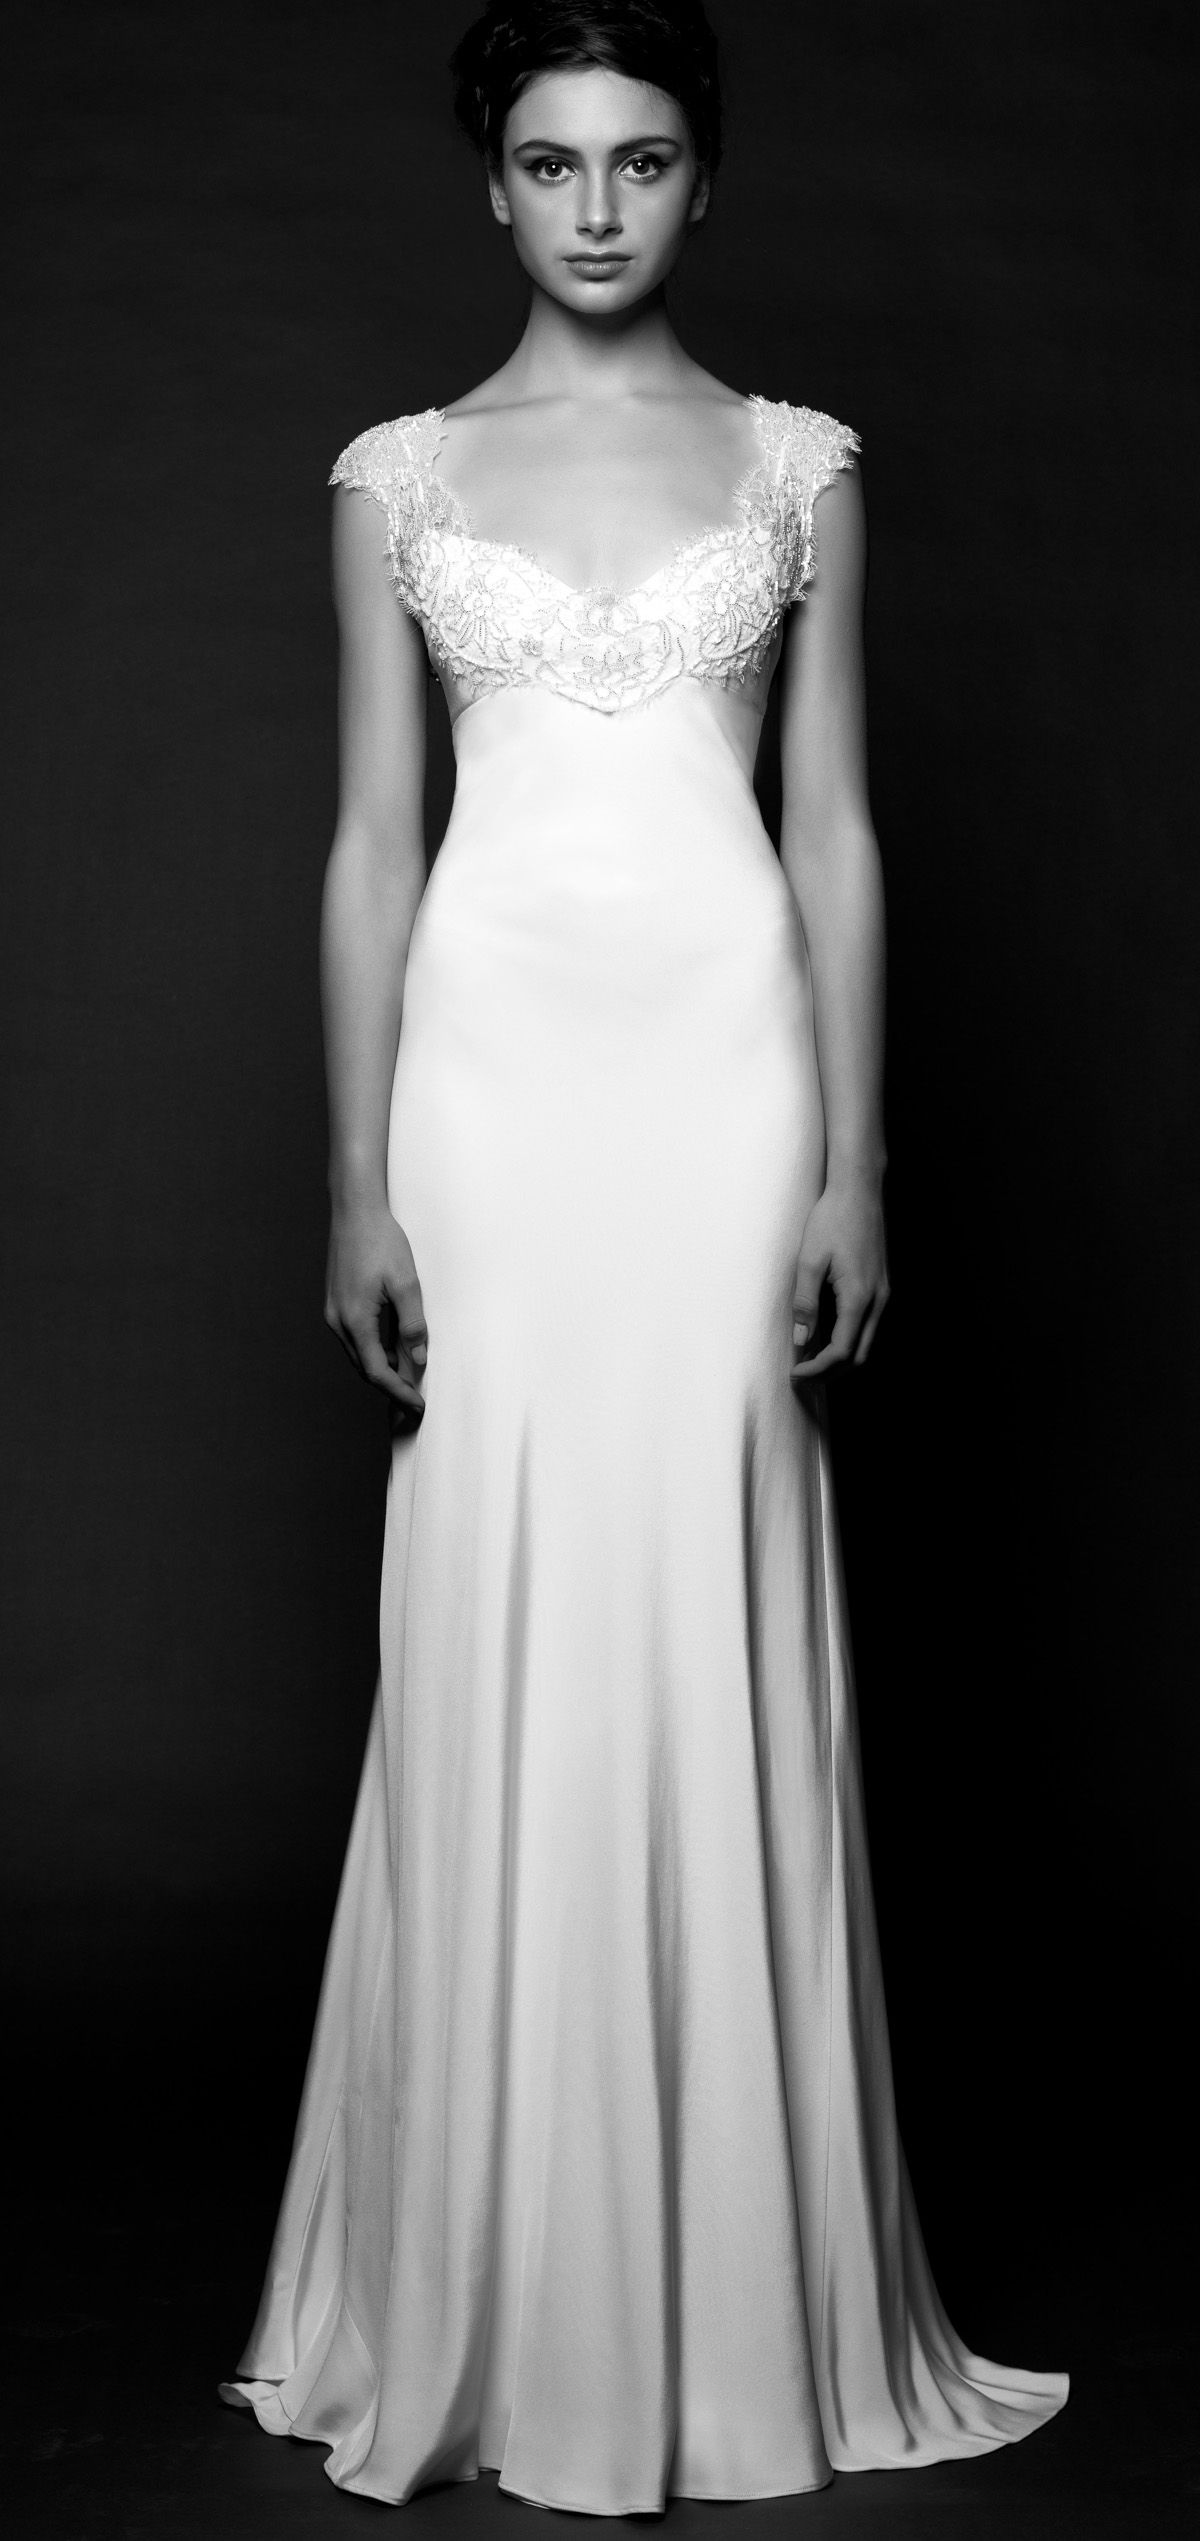 Elegant bias cut wedding dress